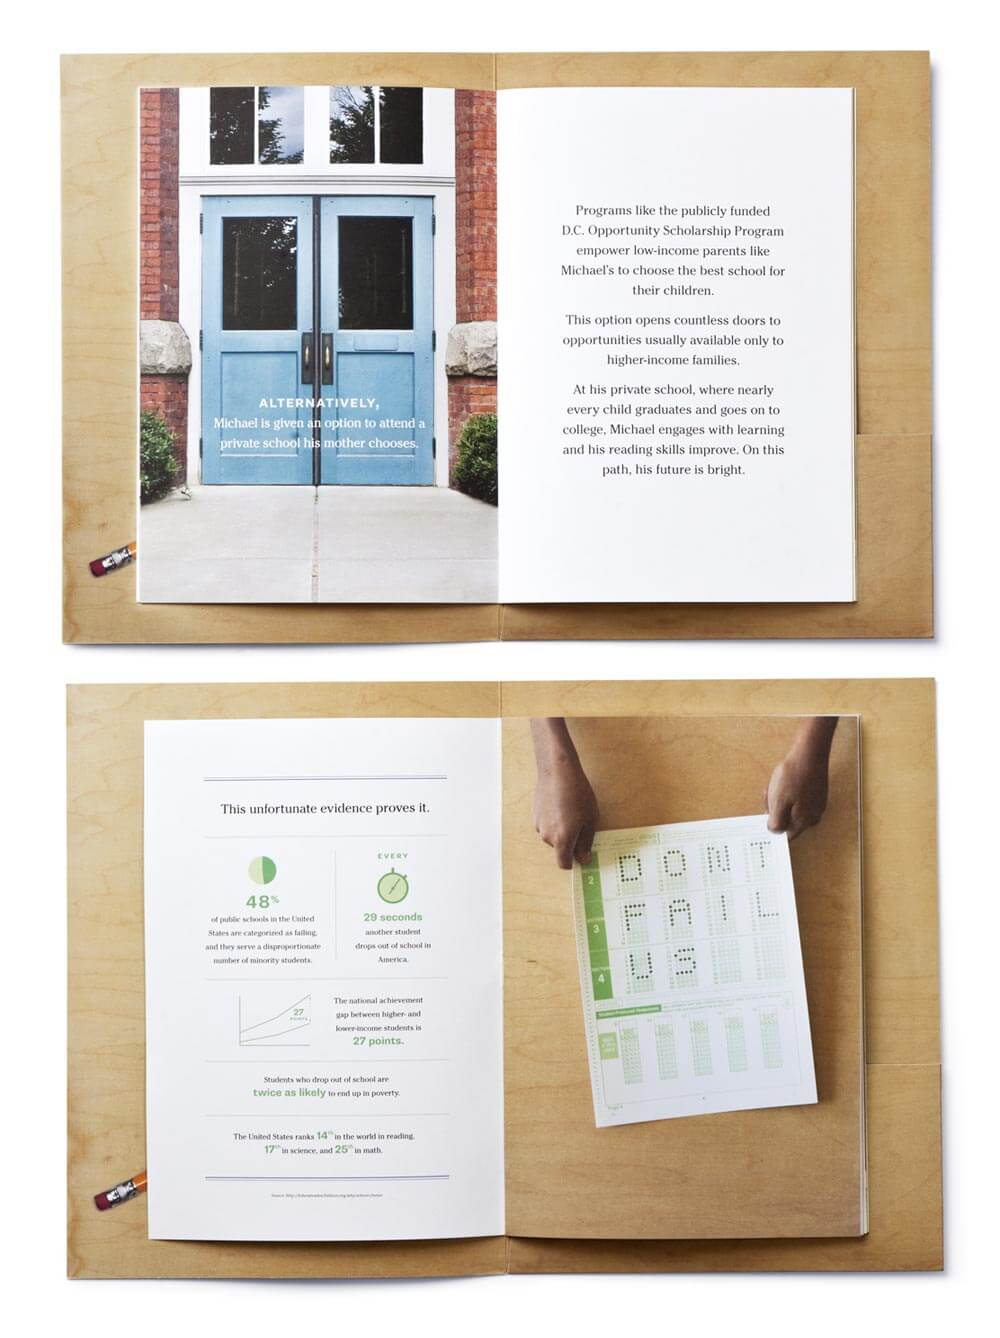 2 open spreads of booklet showing blue doors, infographics, and scantron sheet